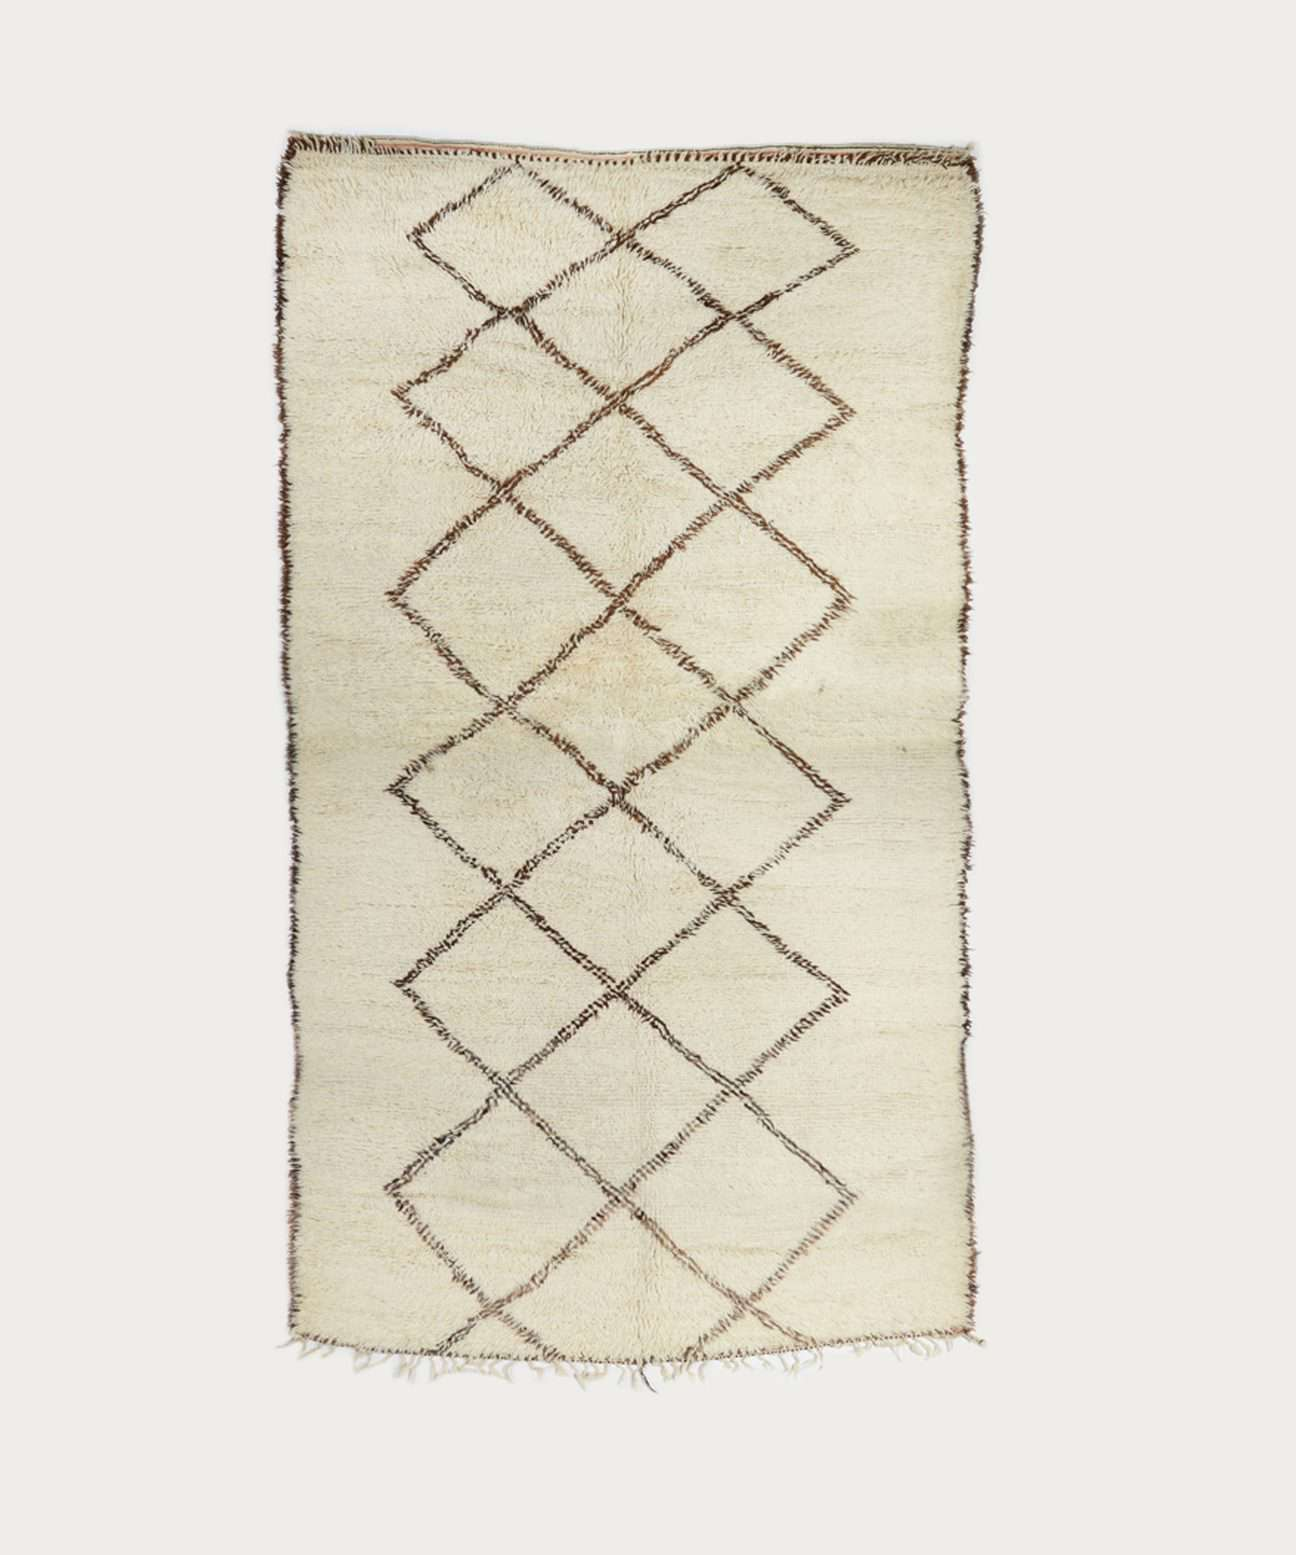 no. 18 Vintage Moroccan Rug by Merchant Modern